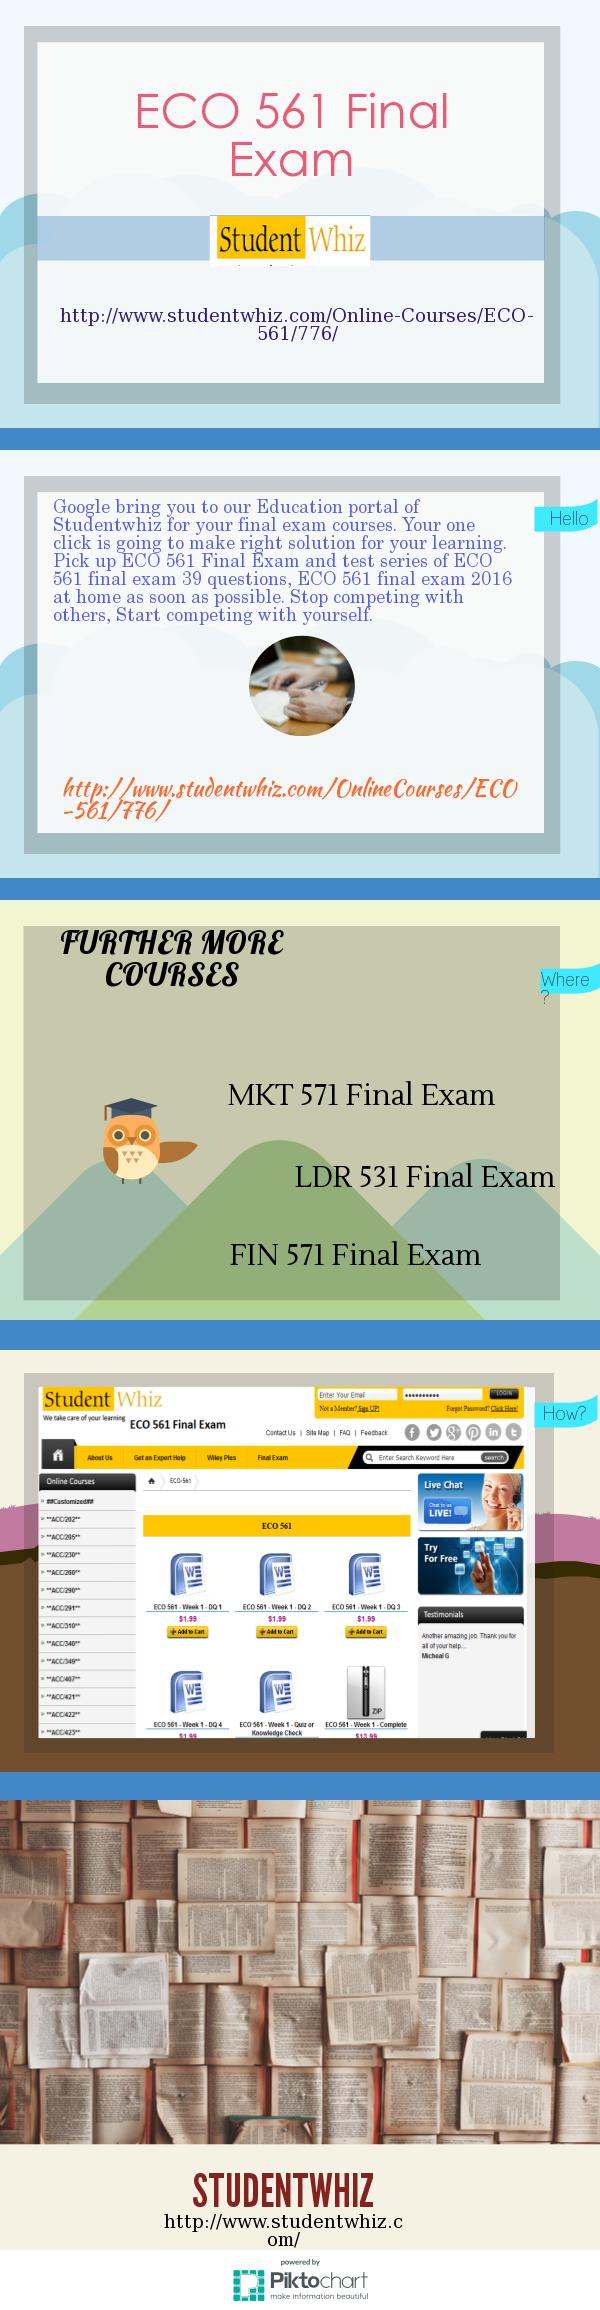 Eco 561 final exam 2016 2017 answers eco 561 final exam eco 561 final exam 2016 2017 answers eco 561 final exam pinterest final exams finals and phoenix fandeluxe Image collections